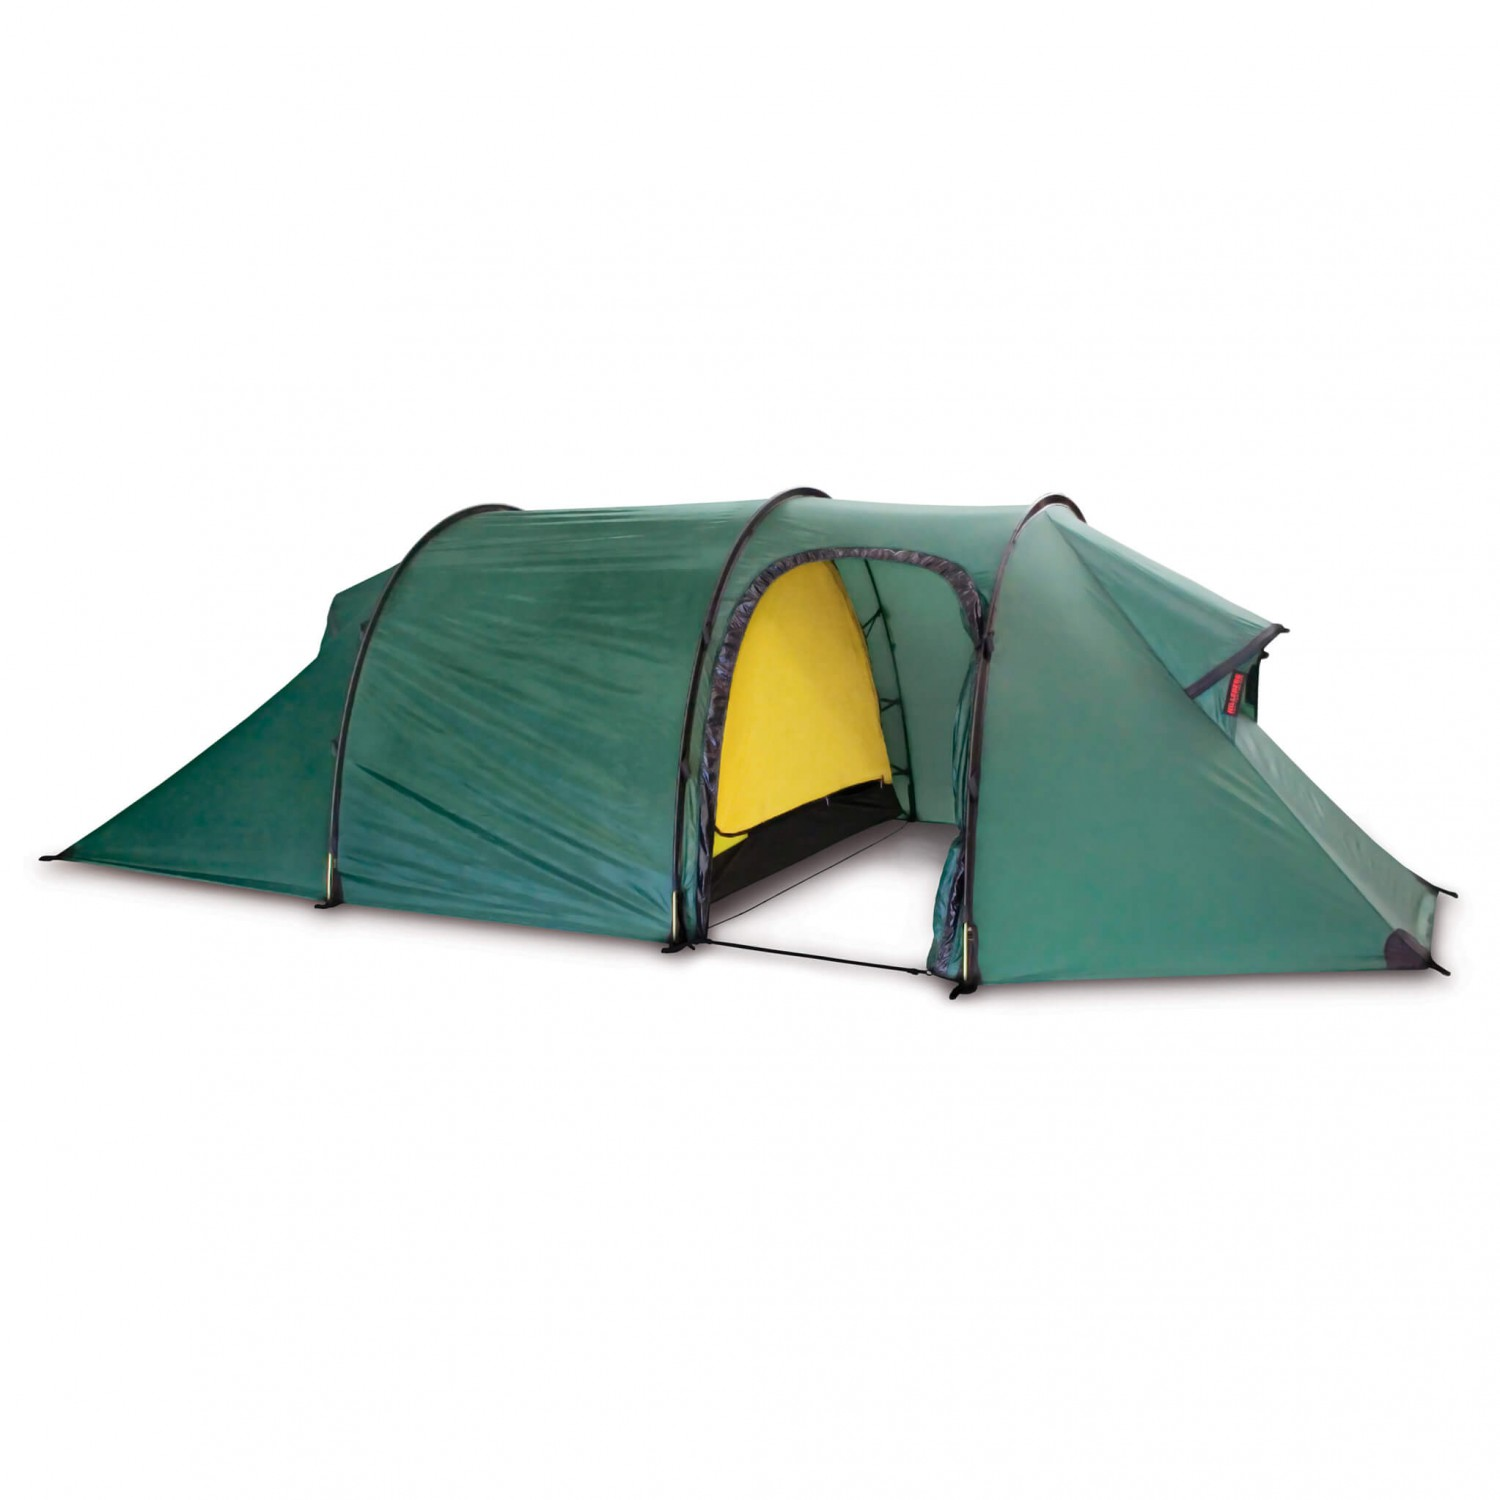 Two Person Tent : Hilleberg nammatj gt person tent free uk delivery